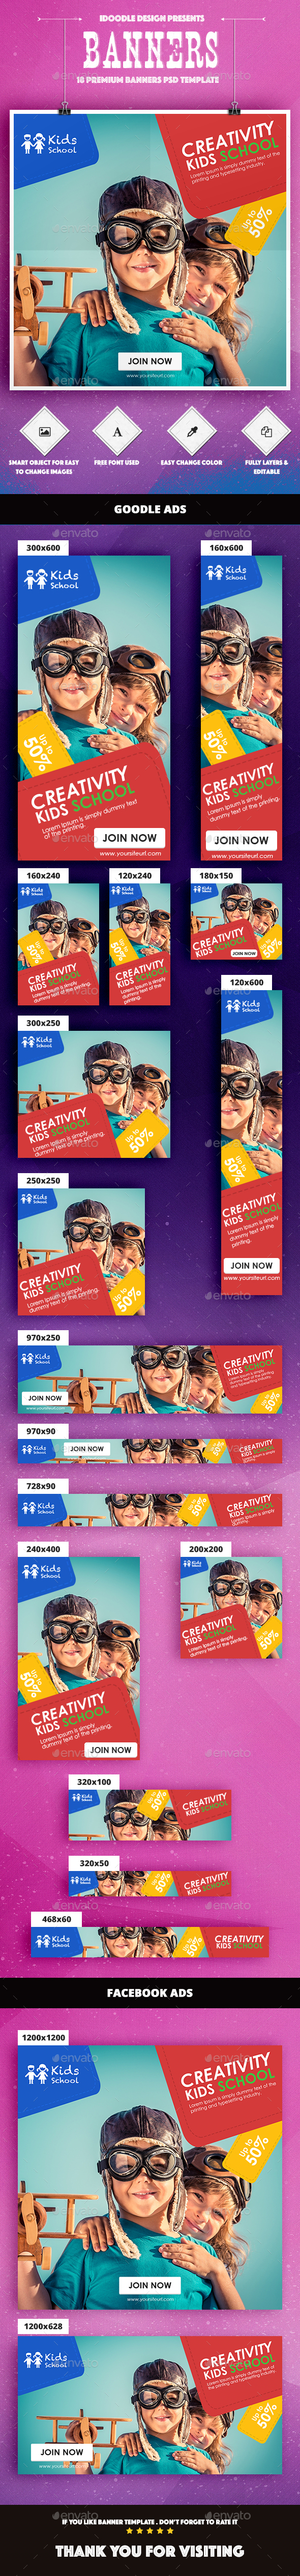 Kids Creative & School Banners Ad - Banners & Ads Web Elements